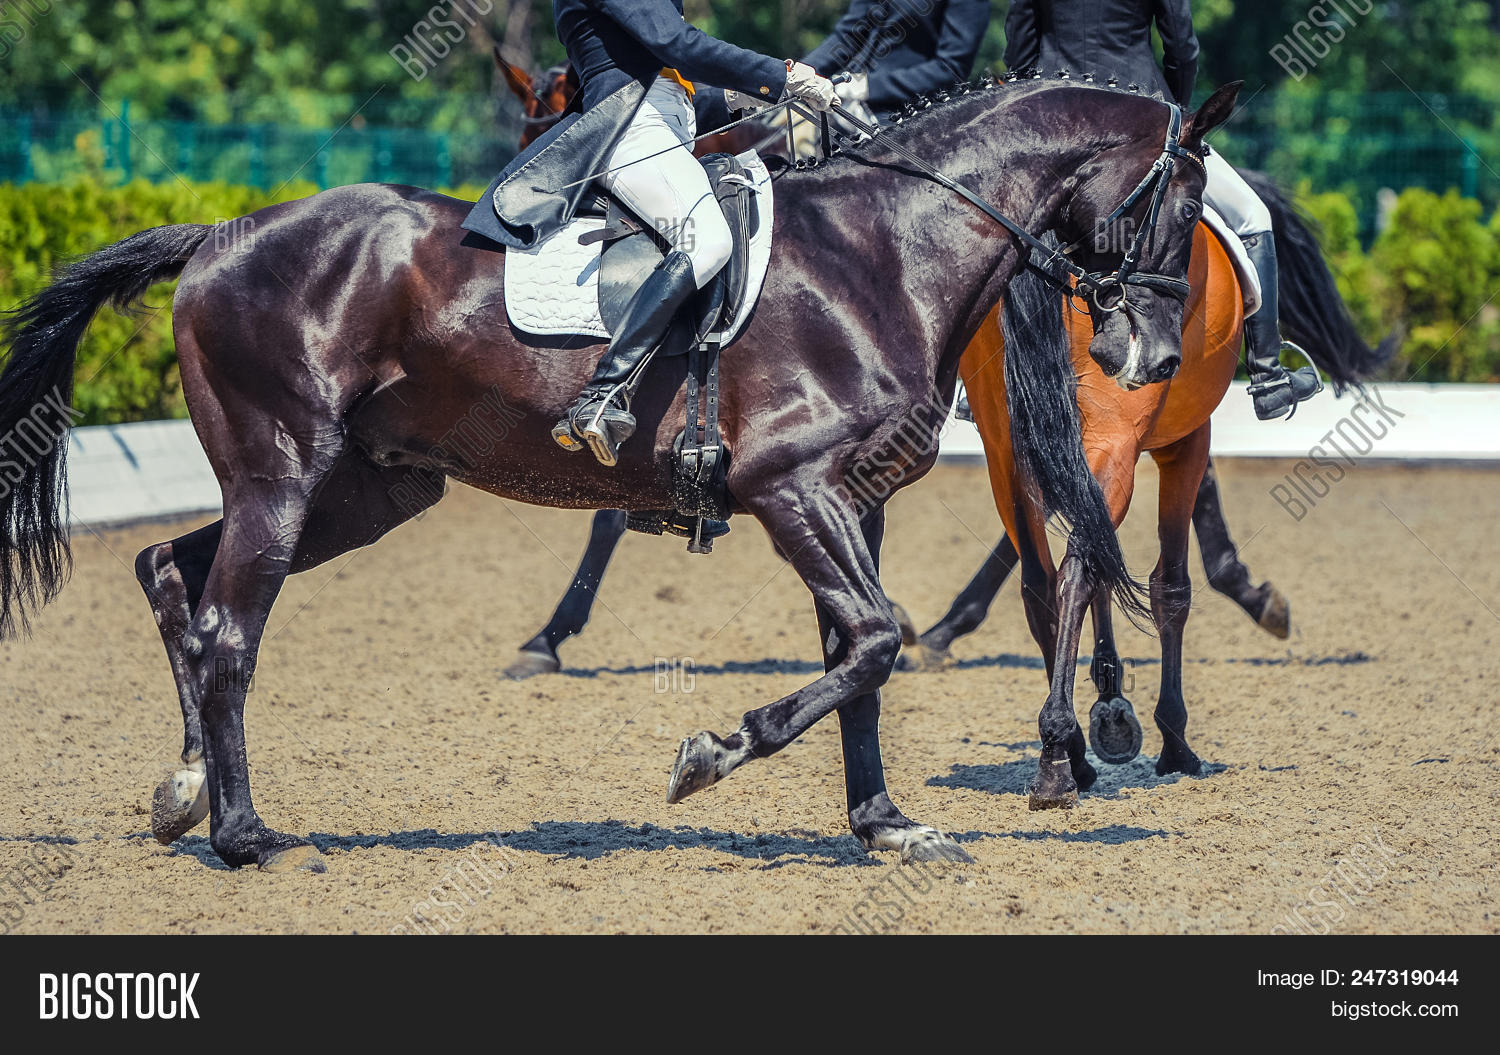 Black Horse Rider Image Photo Free Trial Bigstock